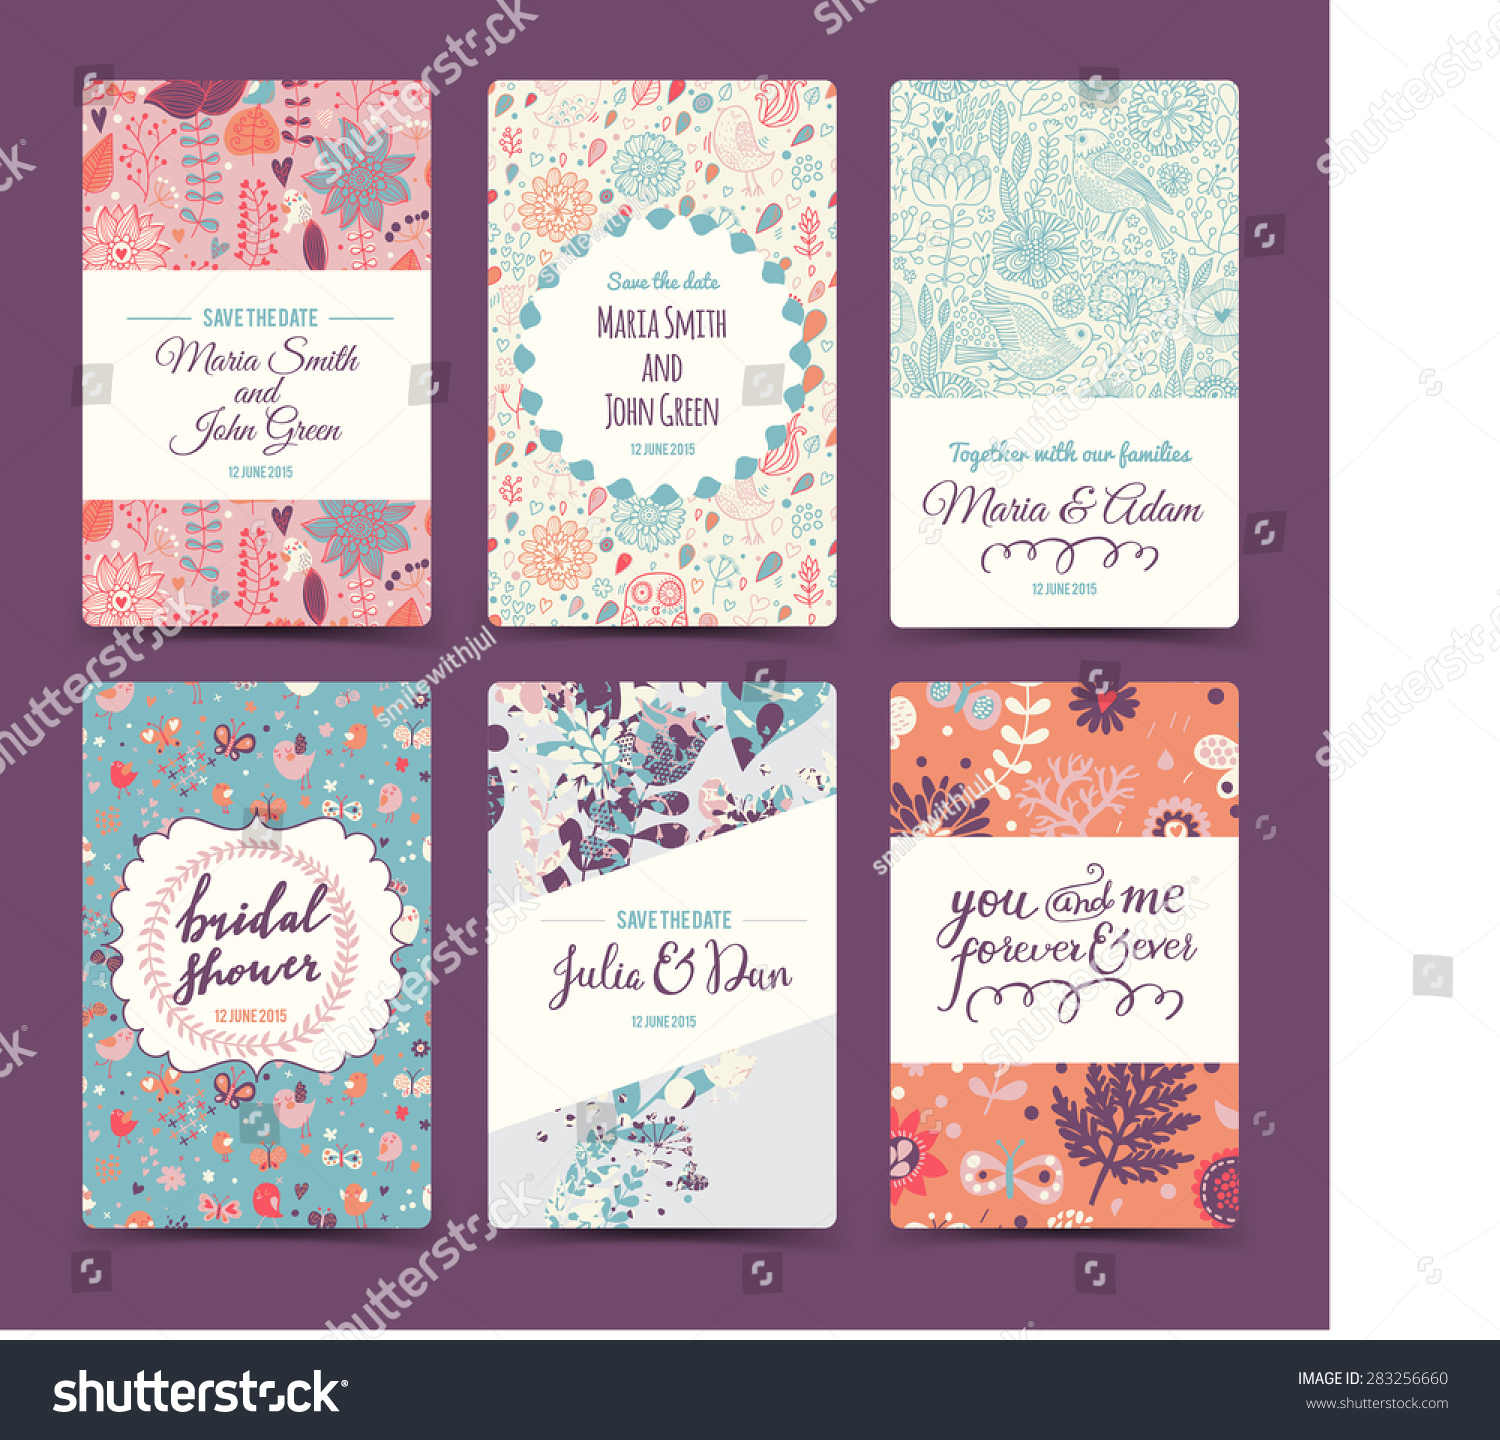 Lovely wedding romantic collection with 6 awesome cards made of hearts flowers wreaths laurel butterflies and birds Graphic set in retro style Sweet save the date invitation cards in vector